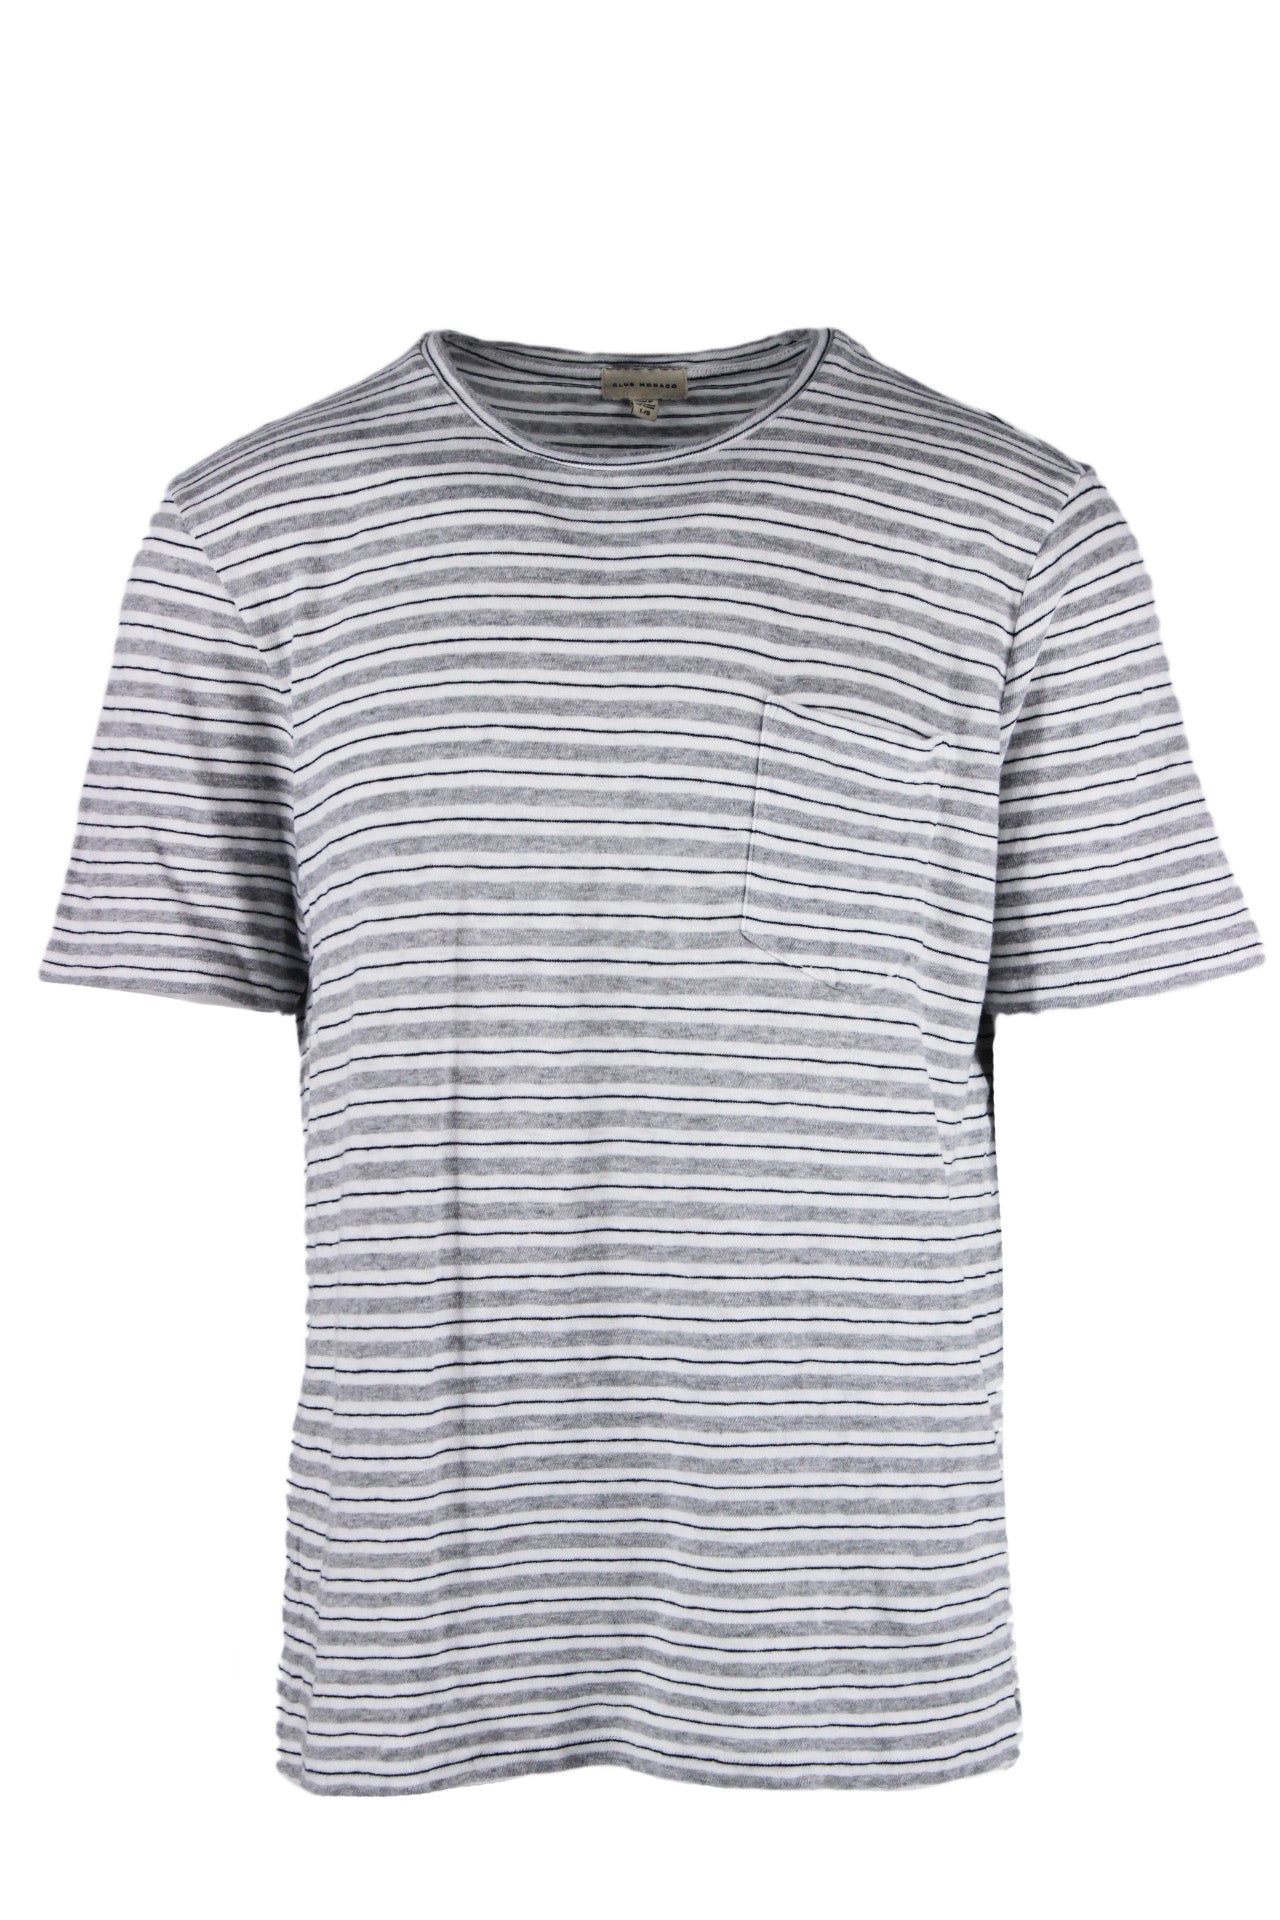 club monaco white/grey/midnight striped t-shirt. features pocket at left breast, ribbed collar, and side slits at hem.